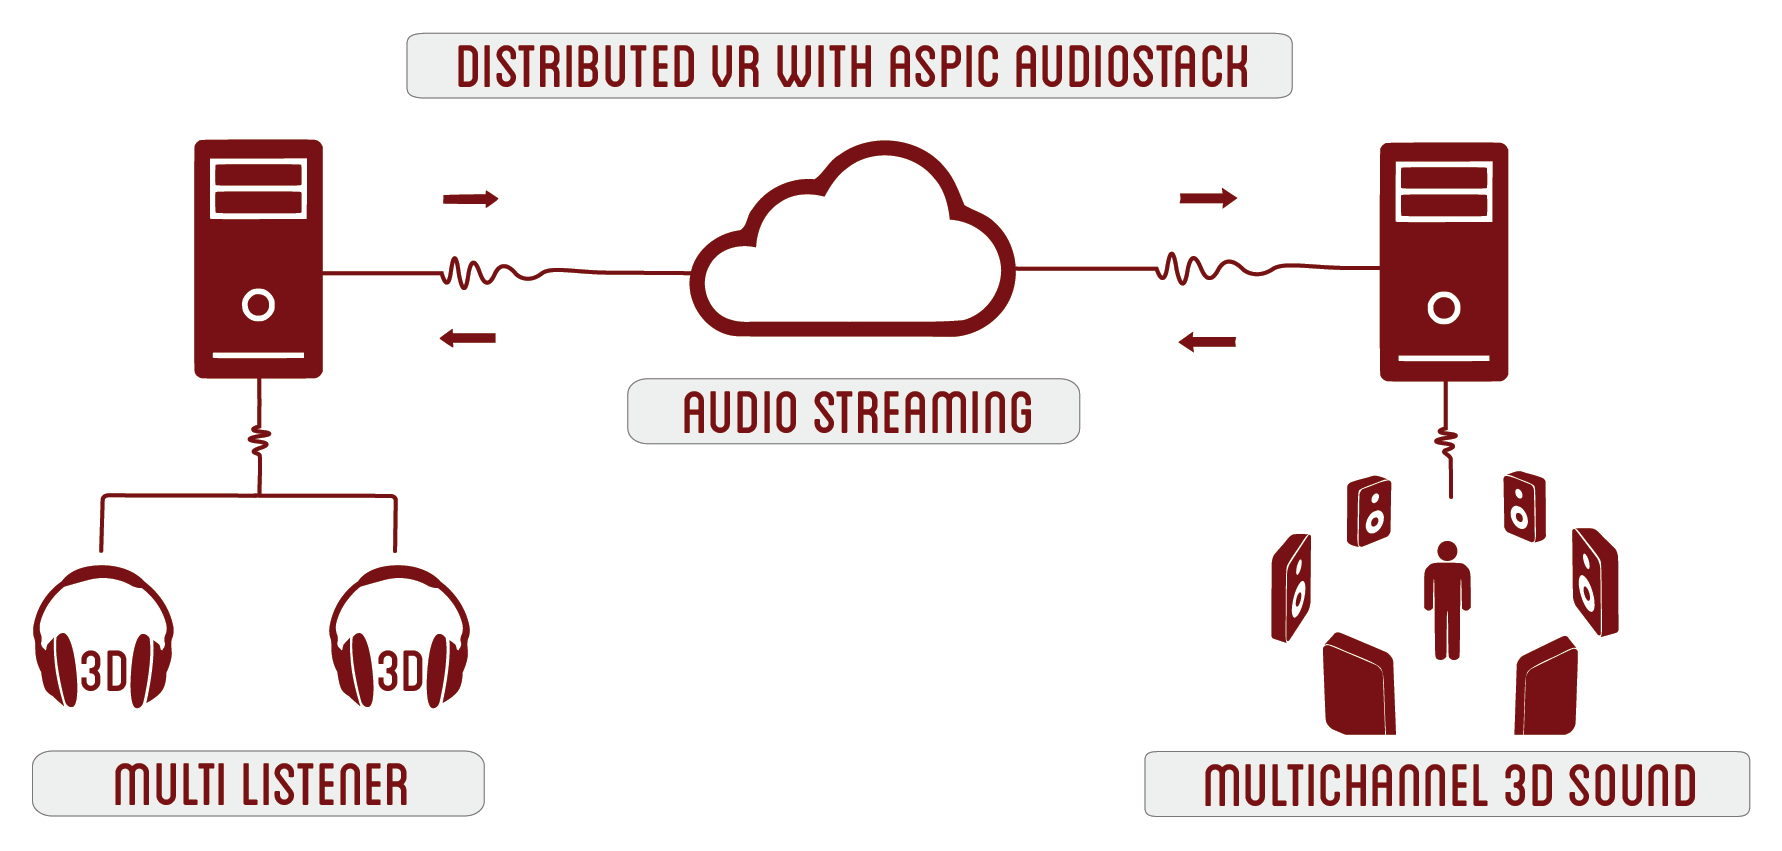 Distributed VR audio with Aspic Audiostack